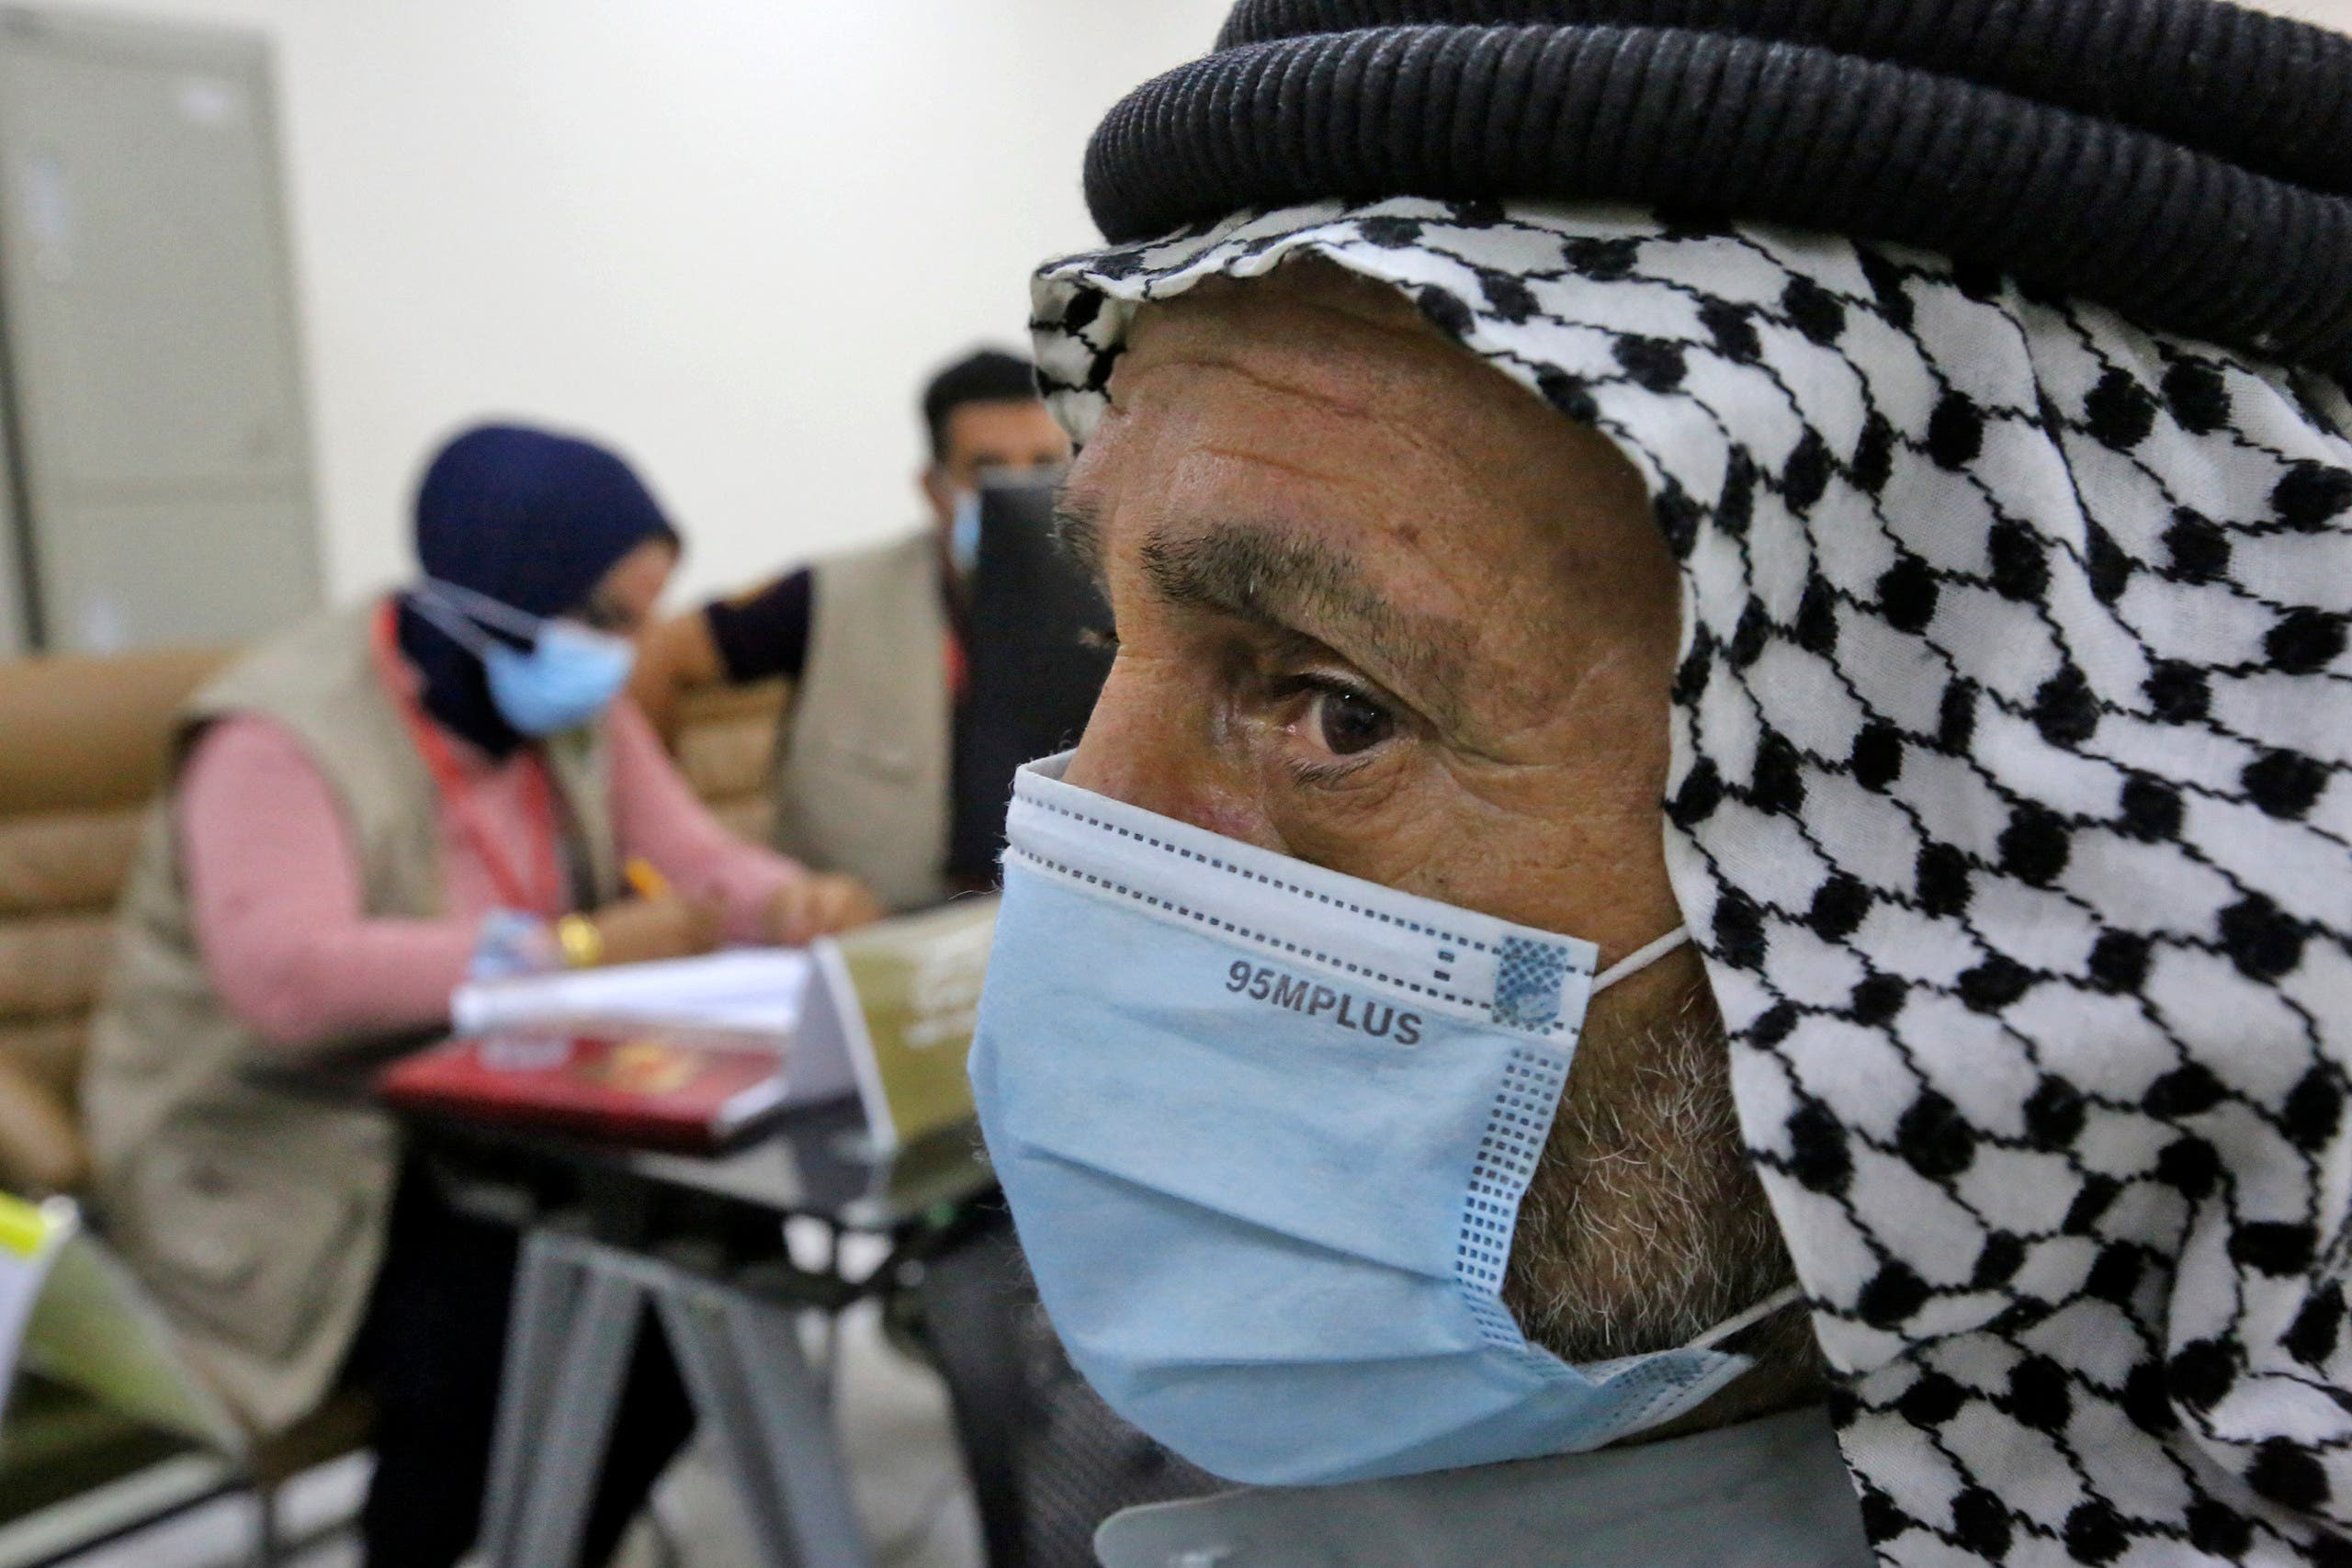 families of Iraqis whose bodies were found in mass graves in the village of Badush, northwest of the city of Mosul, when it was in the hands of the Islamic State group, wait to give blood to Iraqi forensic experts to match with the remains of their loved ones for identification, on June 9, 2021 in Baghdad. (AFP)